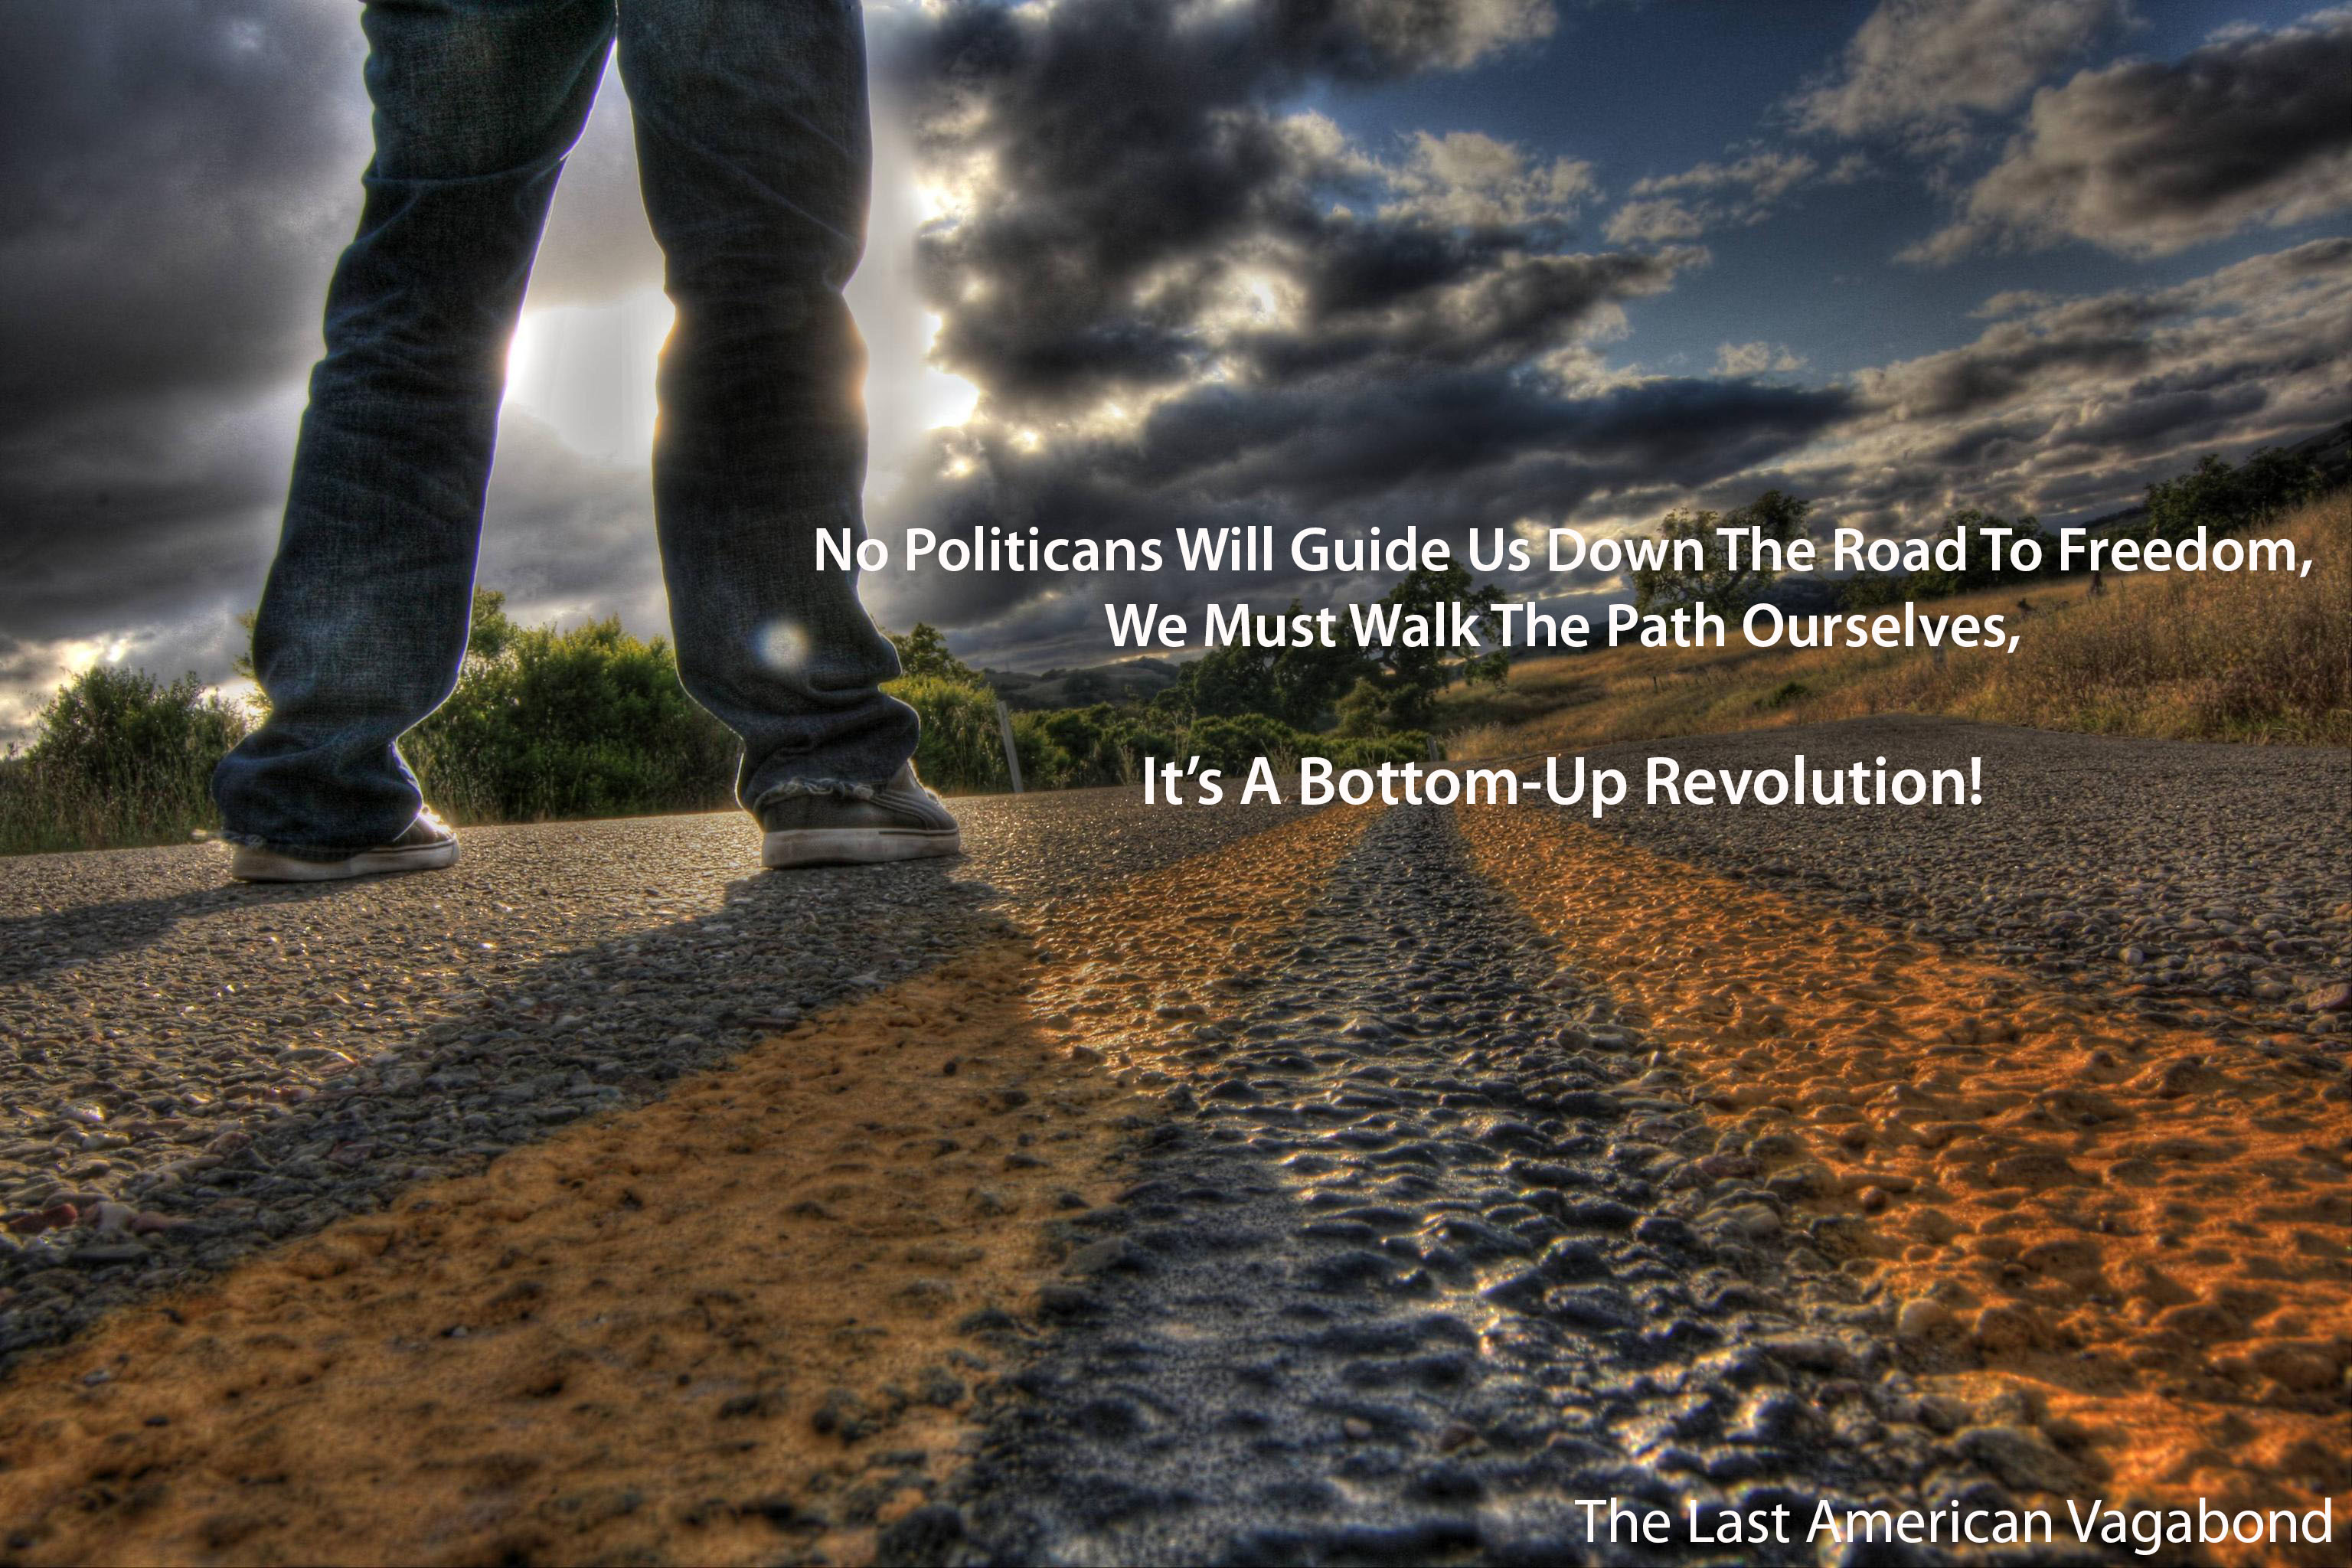 Bottom-Up Revolution